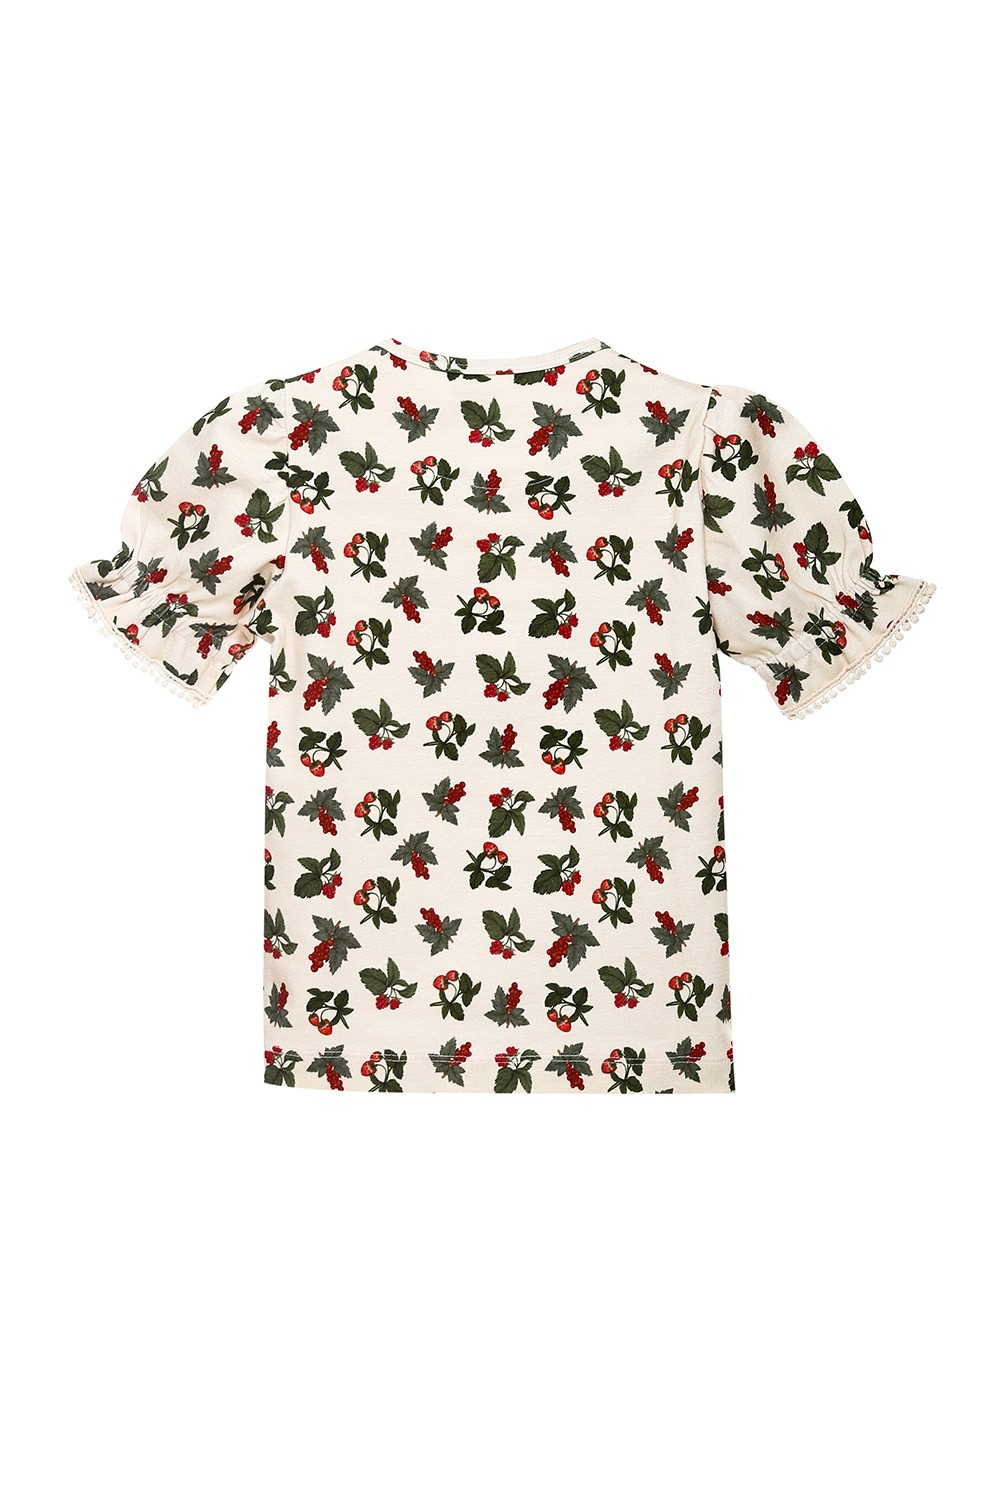 CAMISETA BERRIES KIDS I21